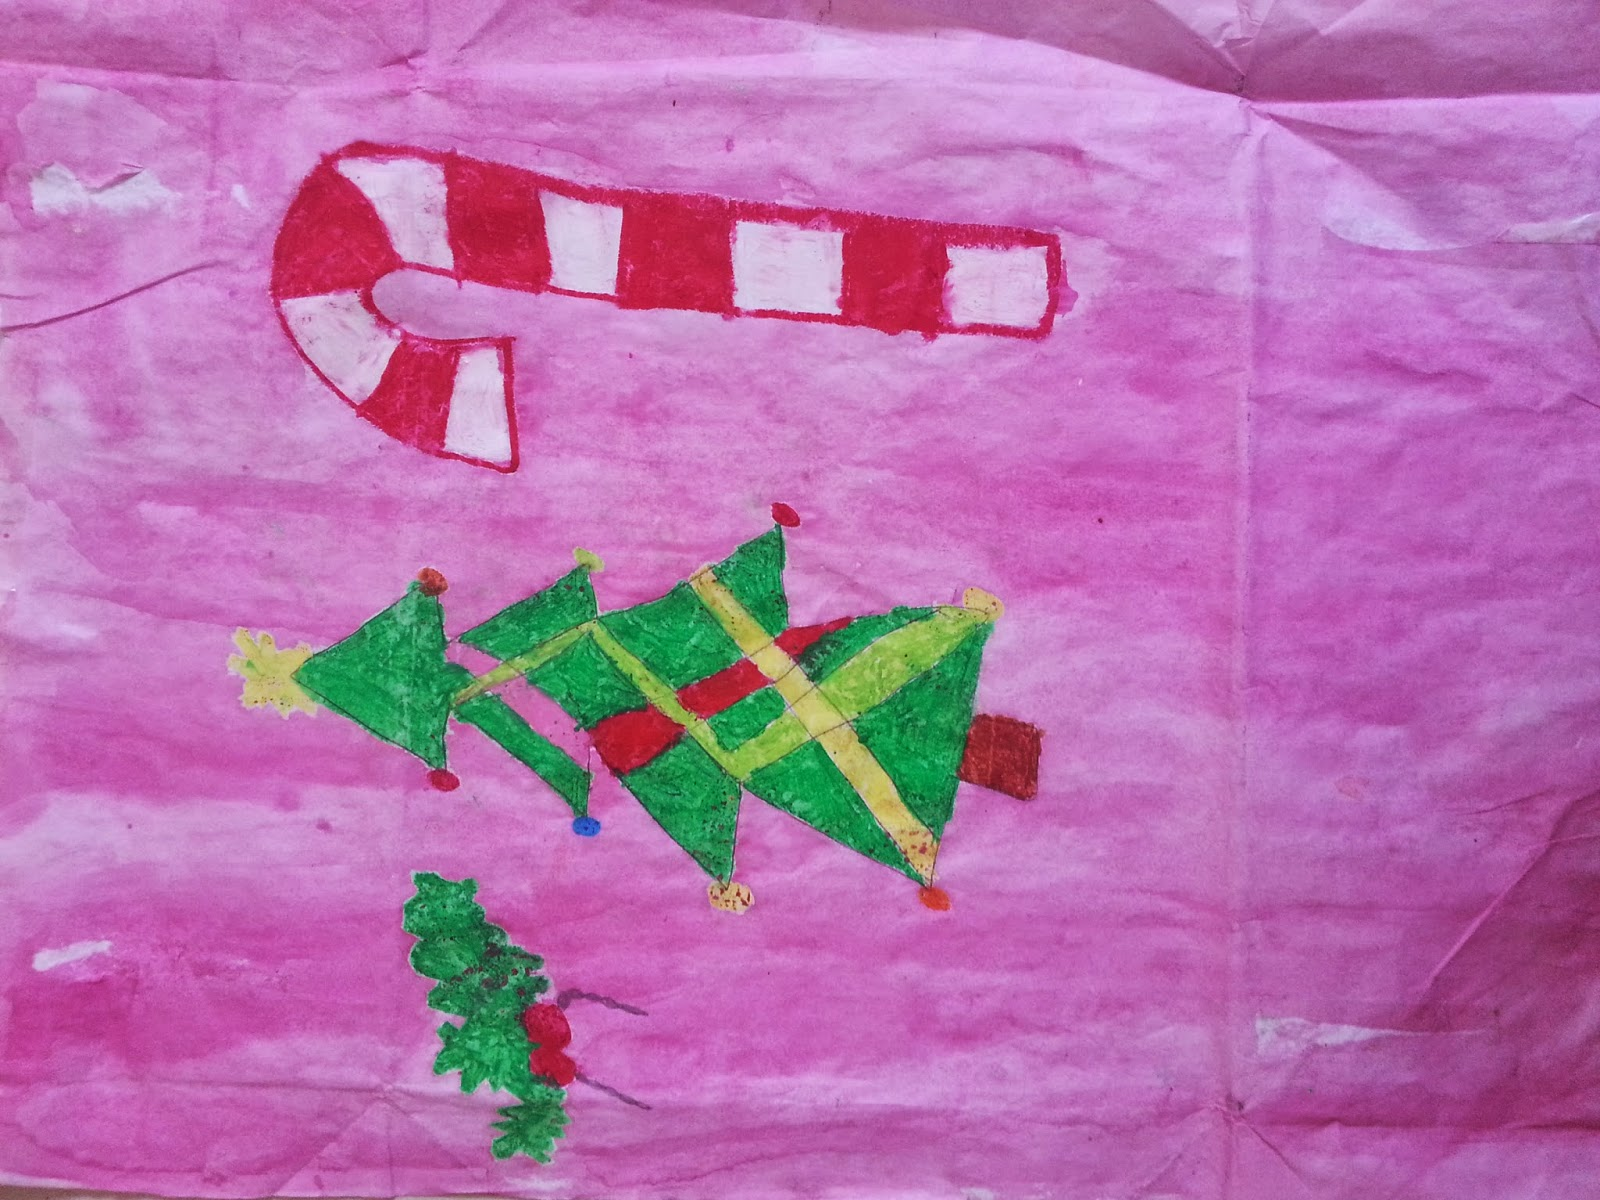 Handmade christmas wrapping paper featuring a tree, holly and candy cane on a pink background